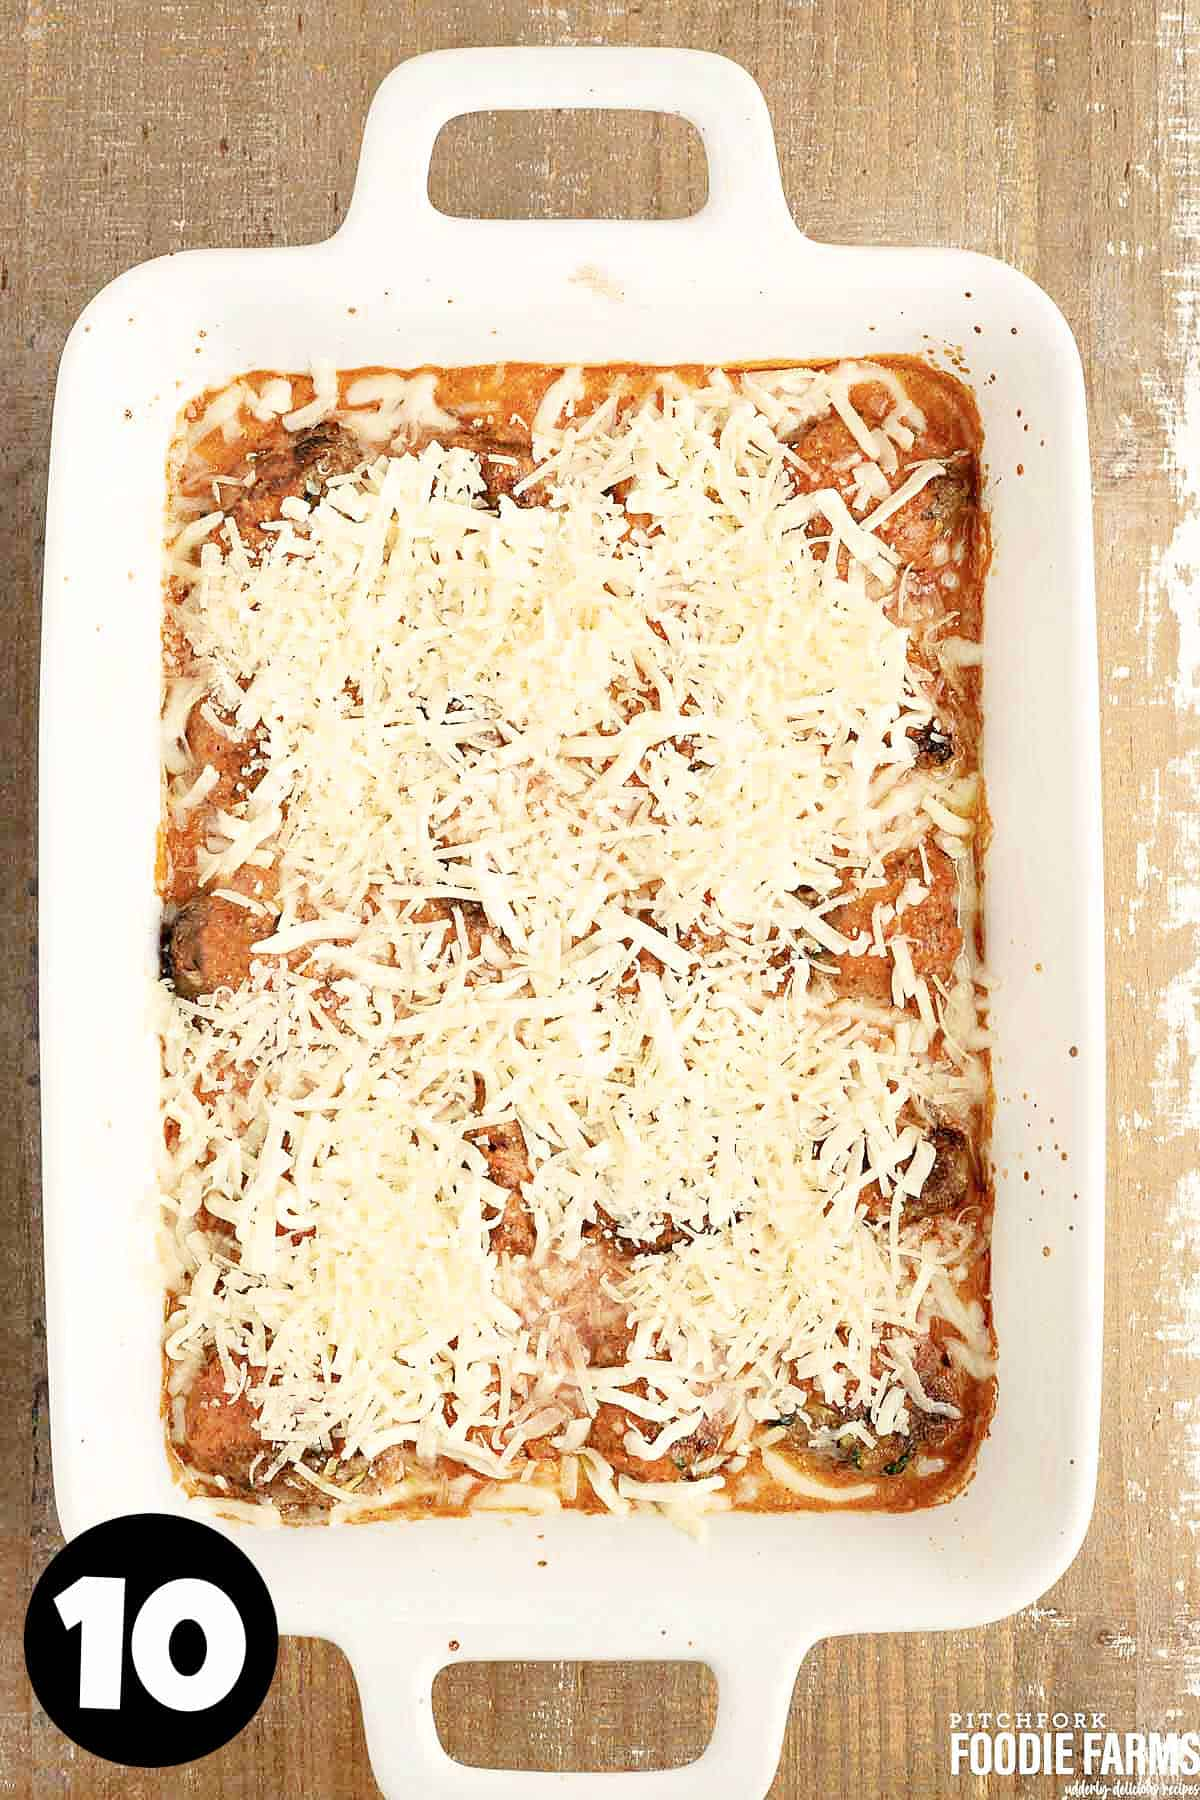 Beef and zucchini meatballs in tomato sauce topped with mozzarella and parmesan cheese.